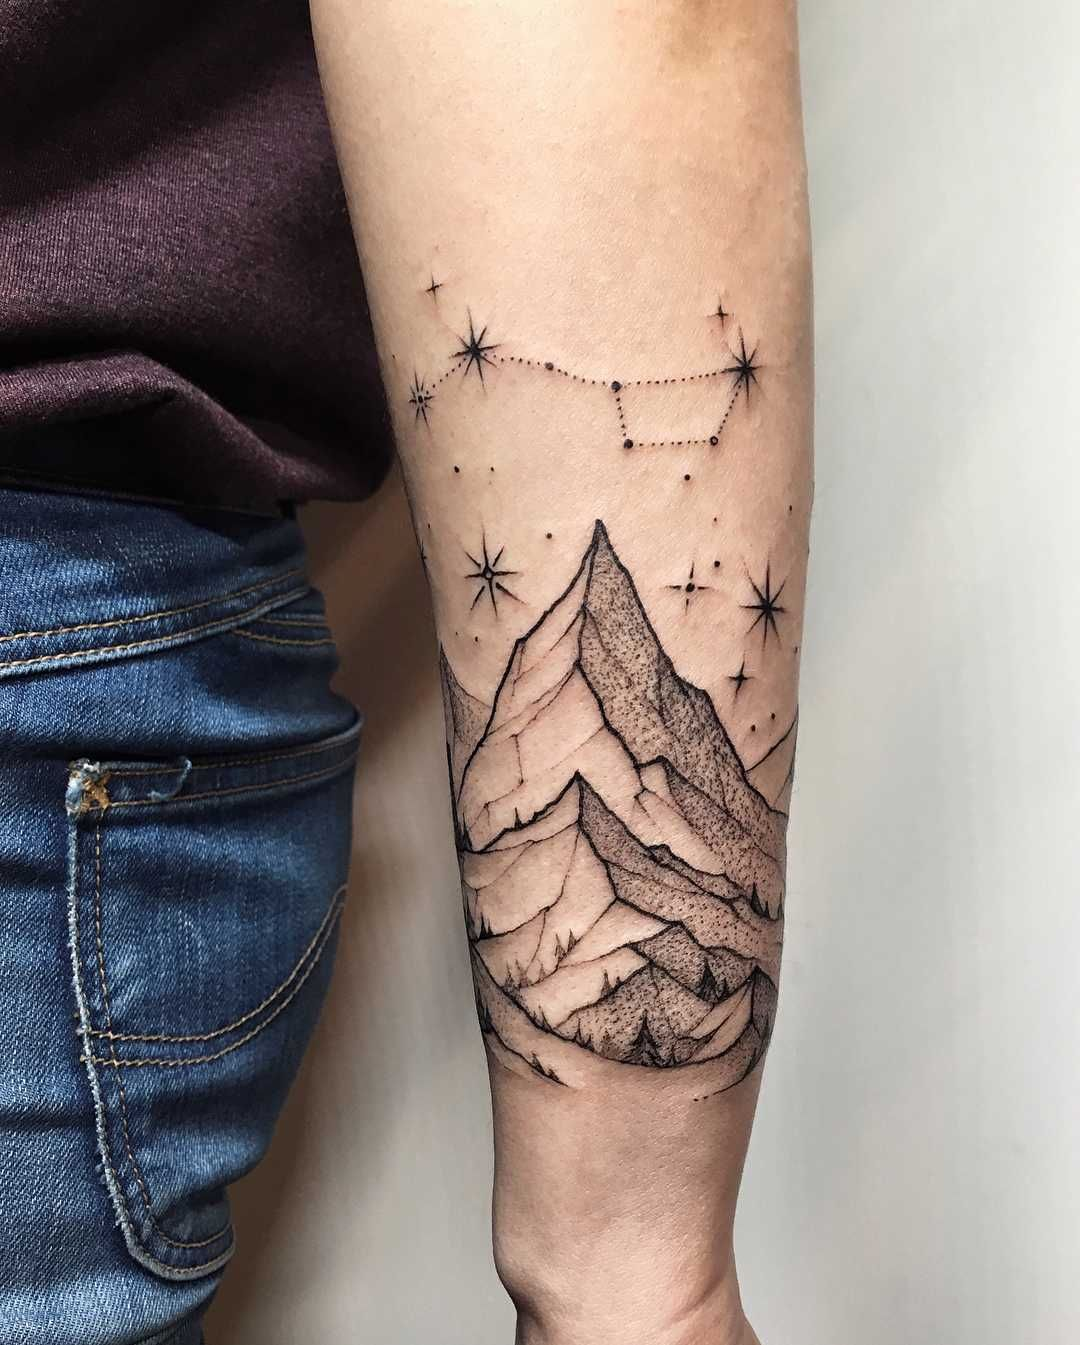 Mountains and big dipper constellation tattoo on the